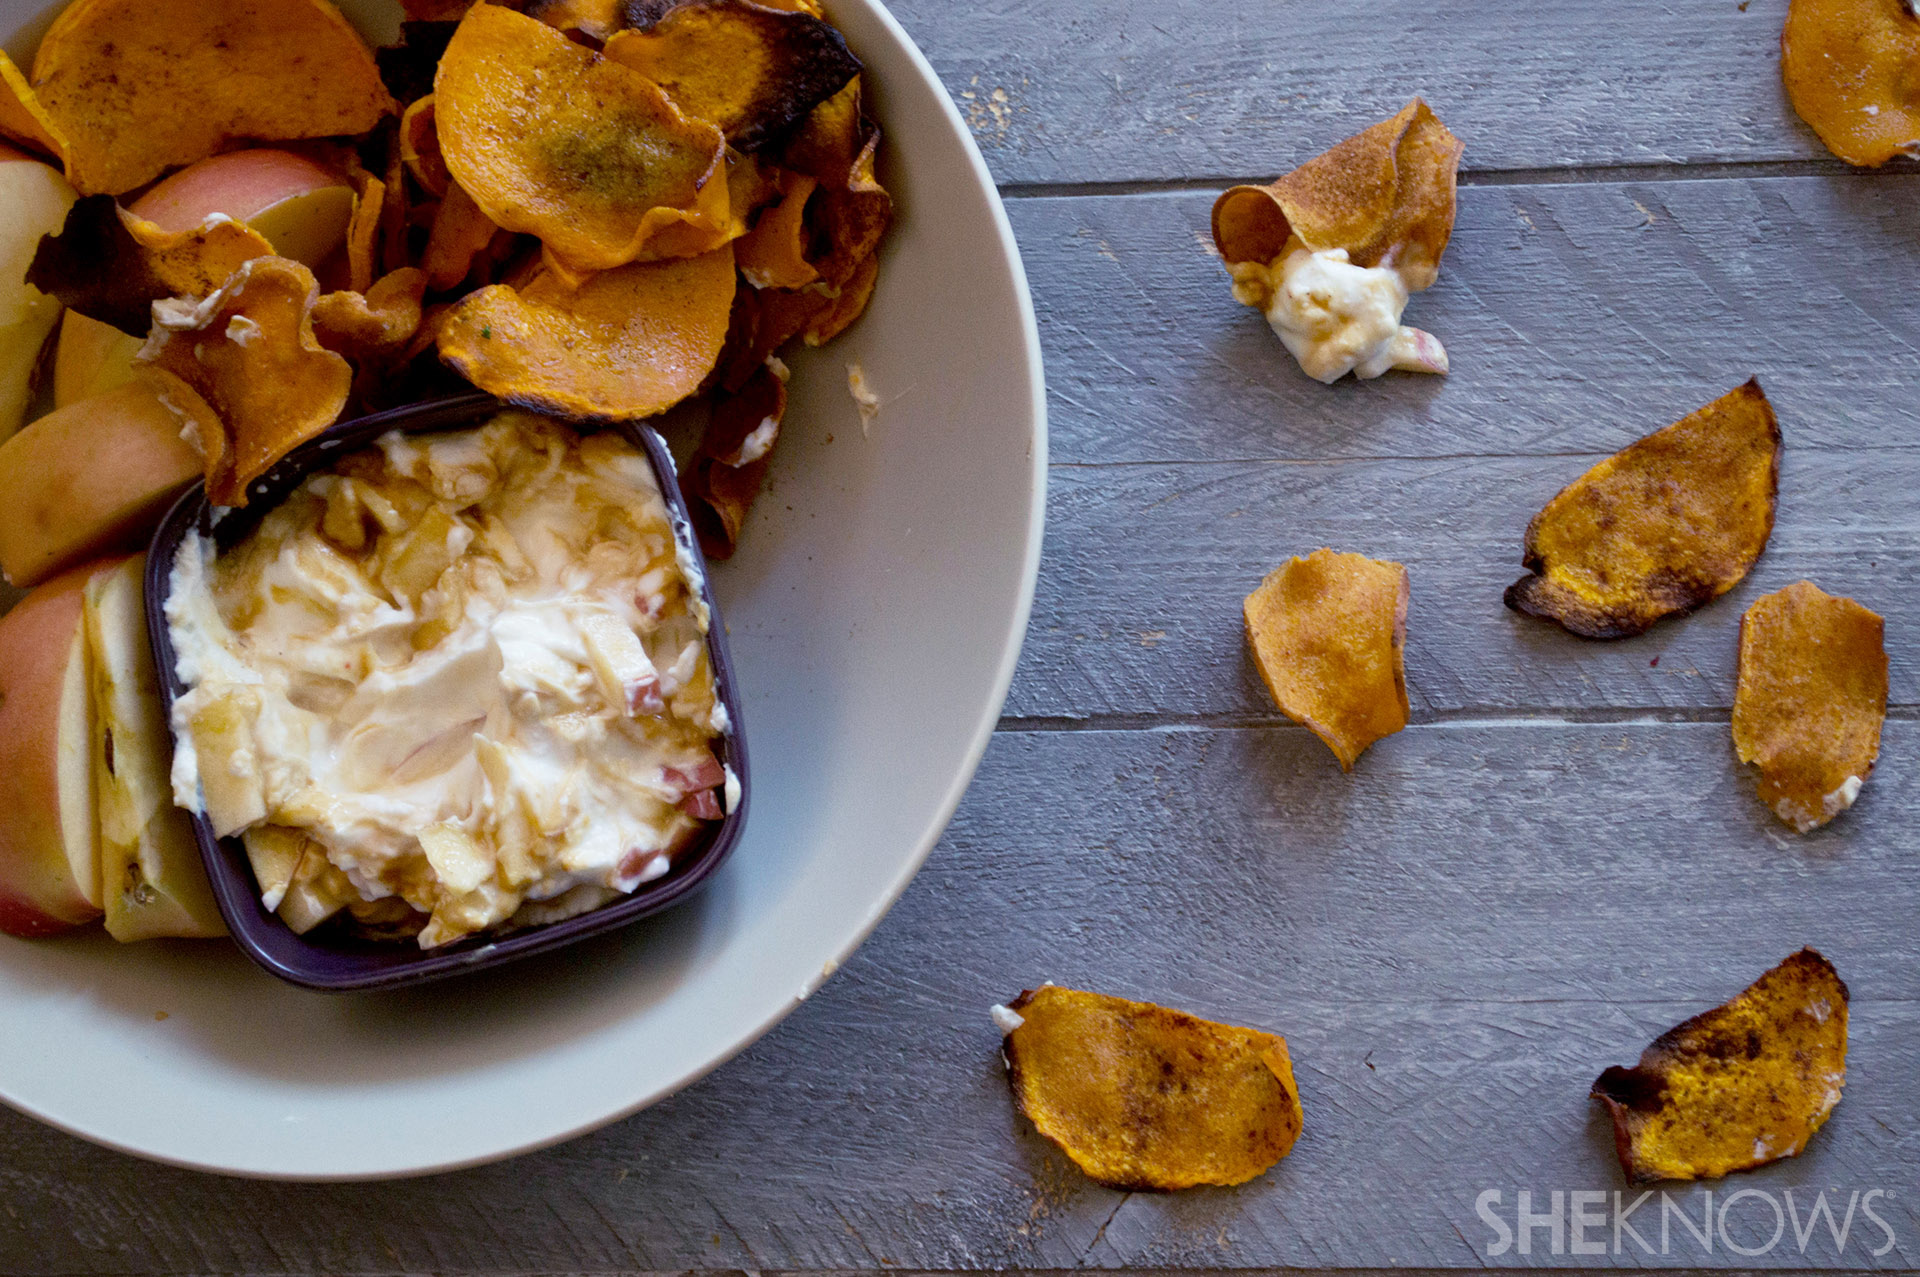 Whip up a batch of healthy vegetable chips to snack on